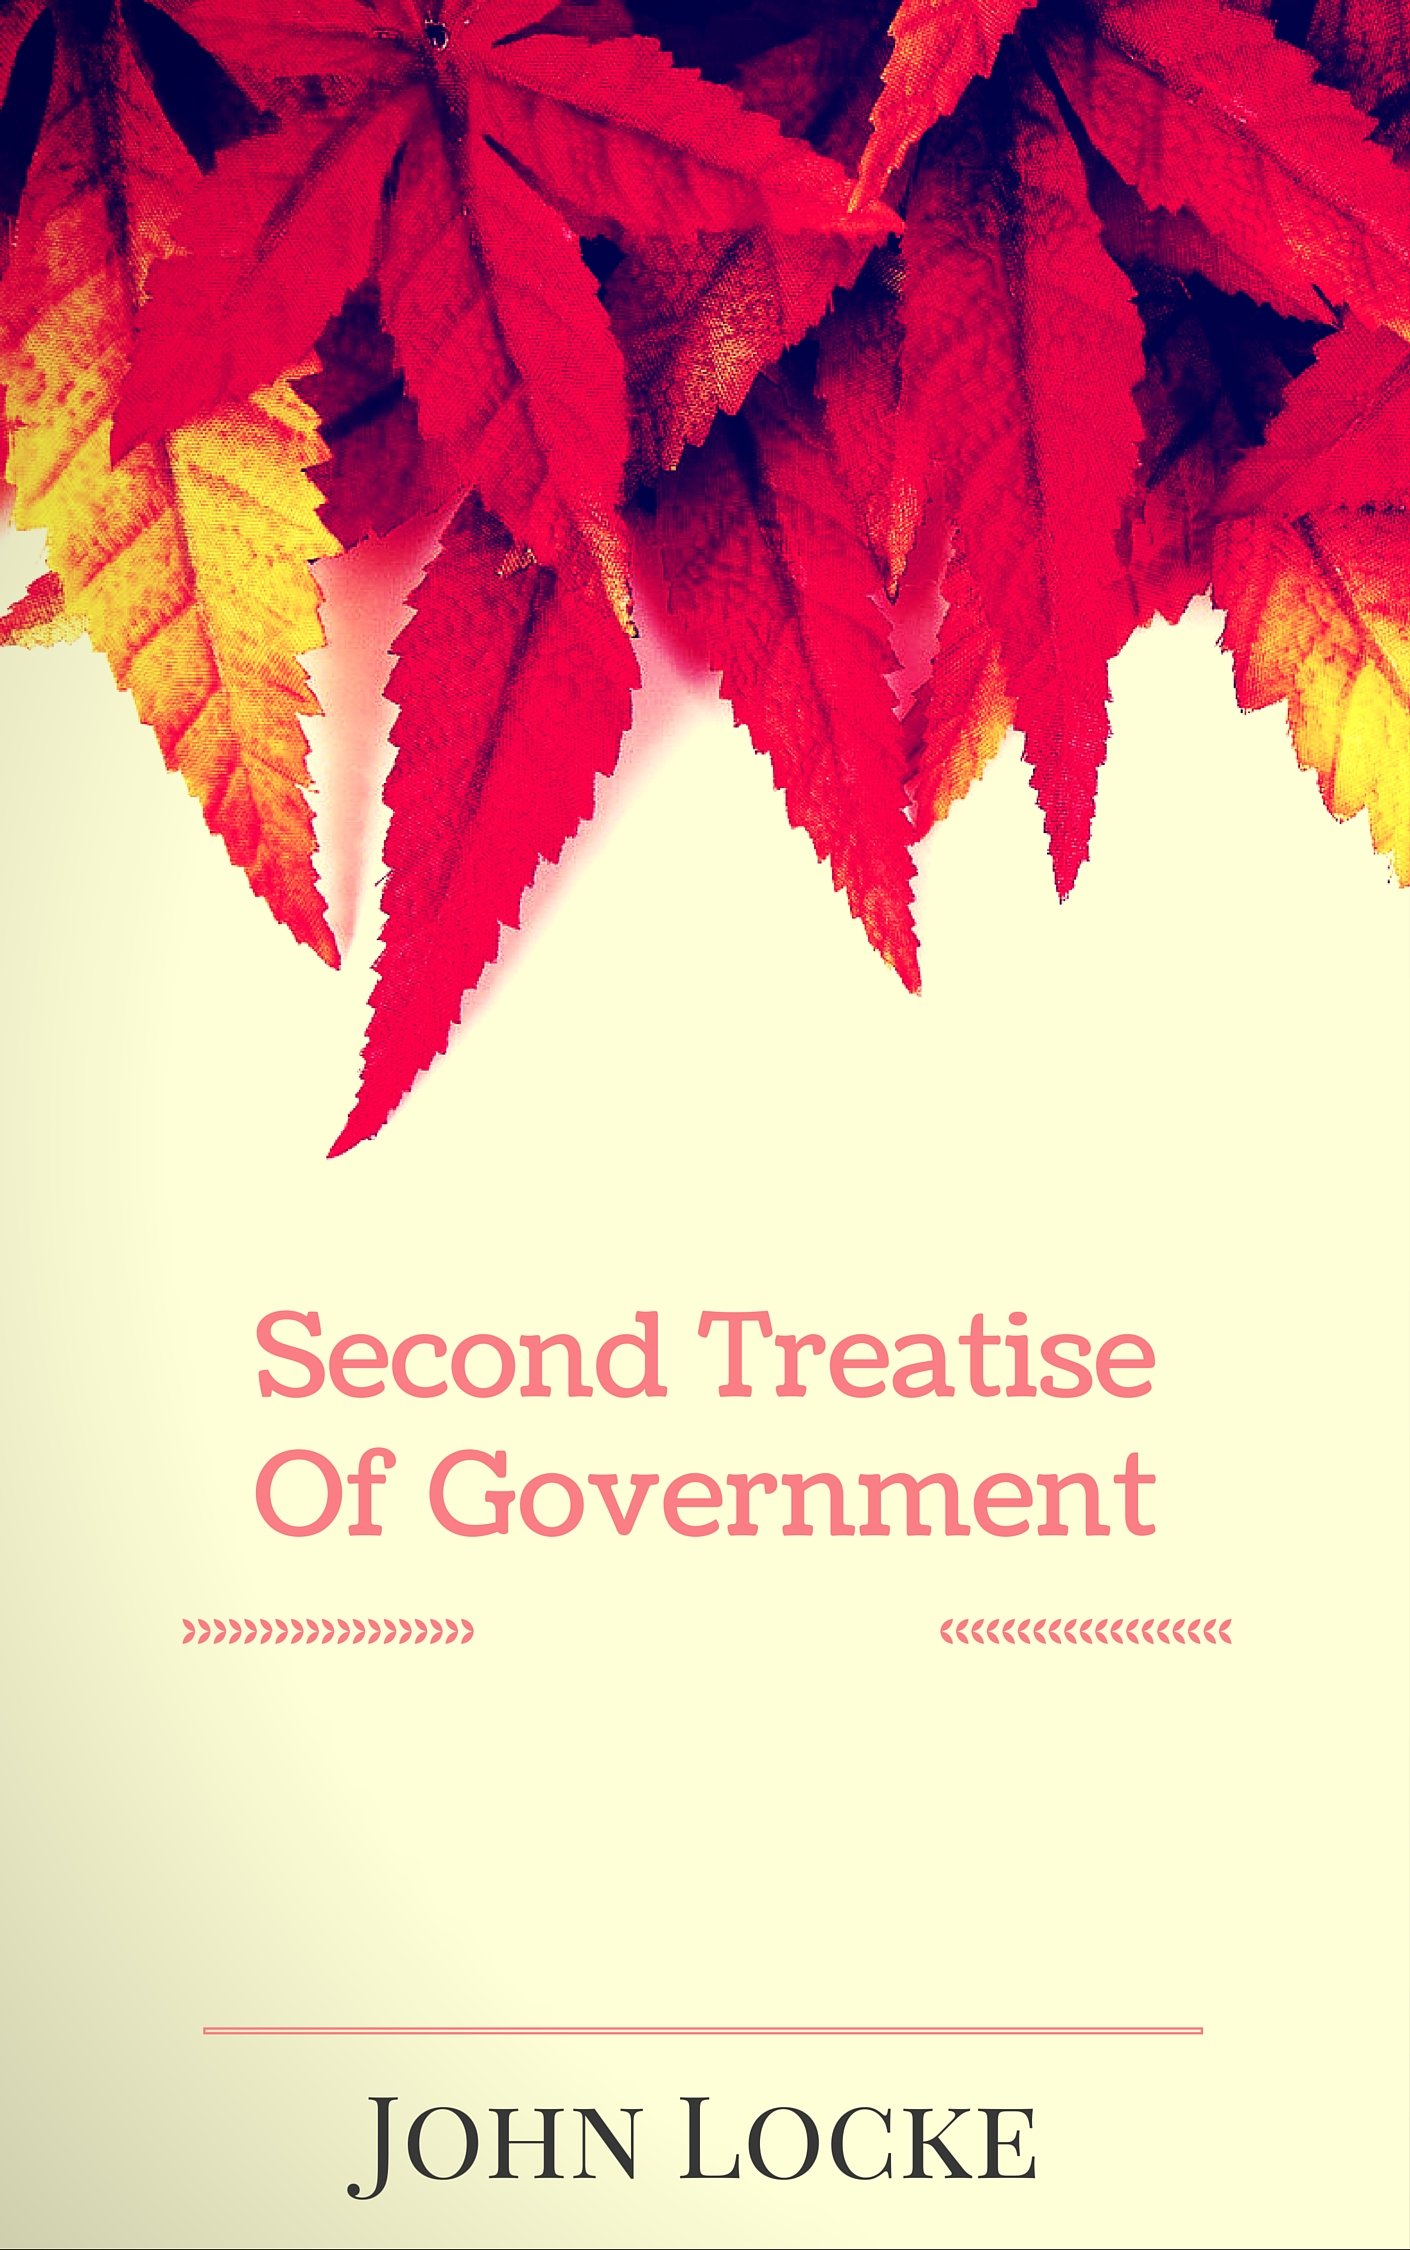 Second Treatise Of Government: By John Locke - Illustrated